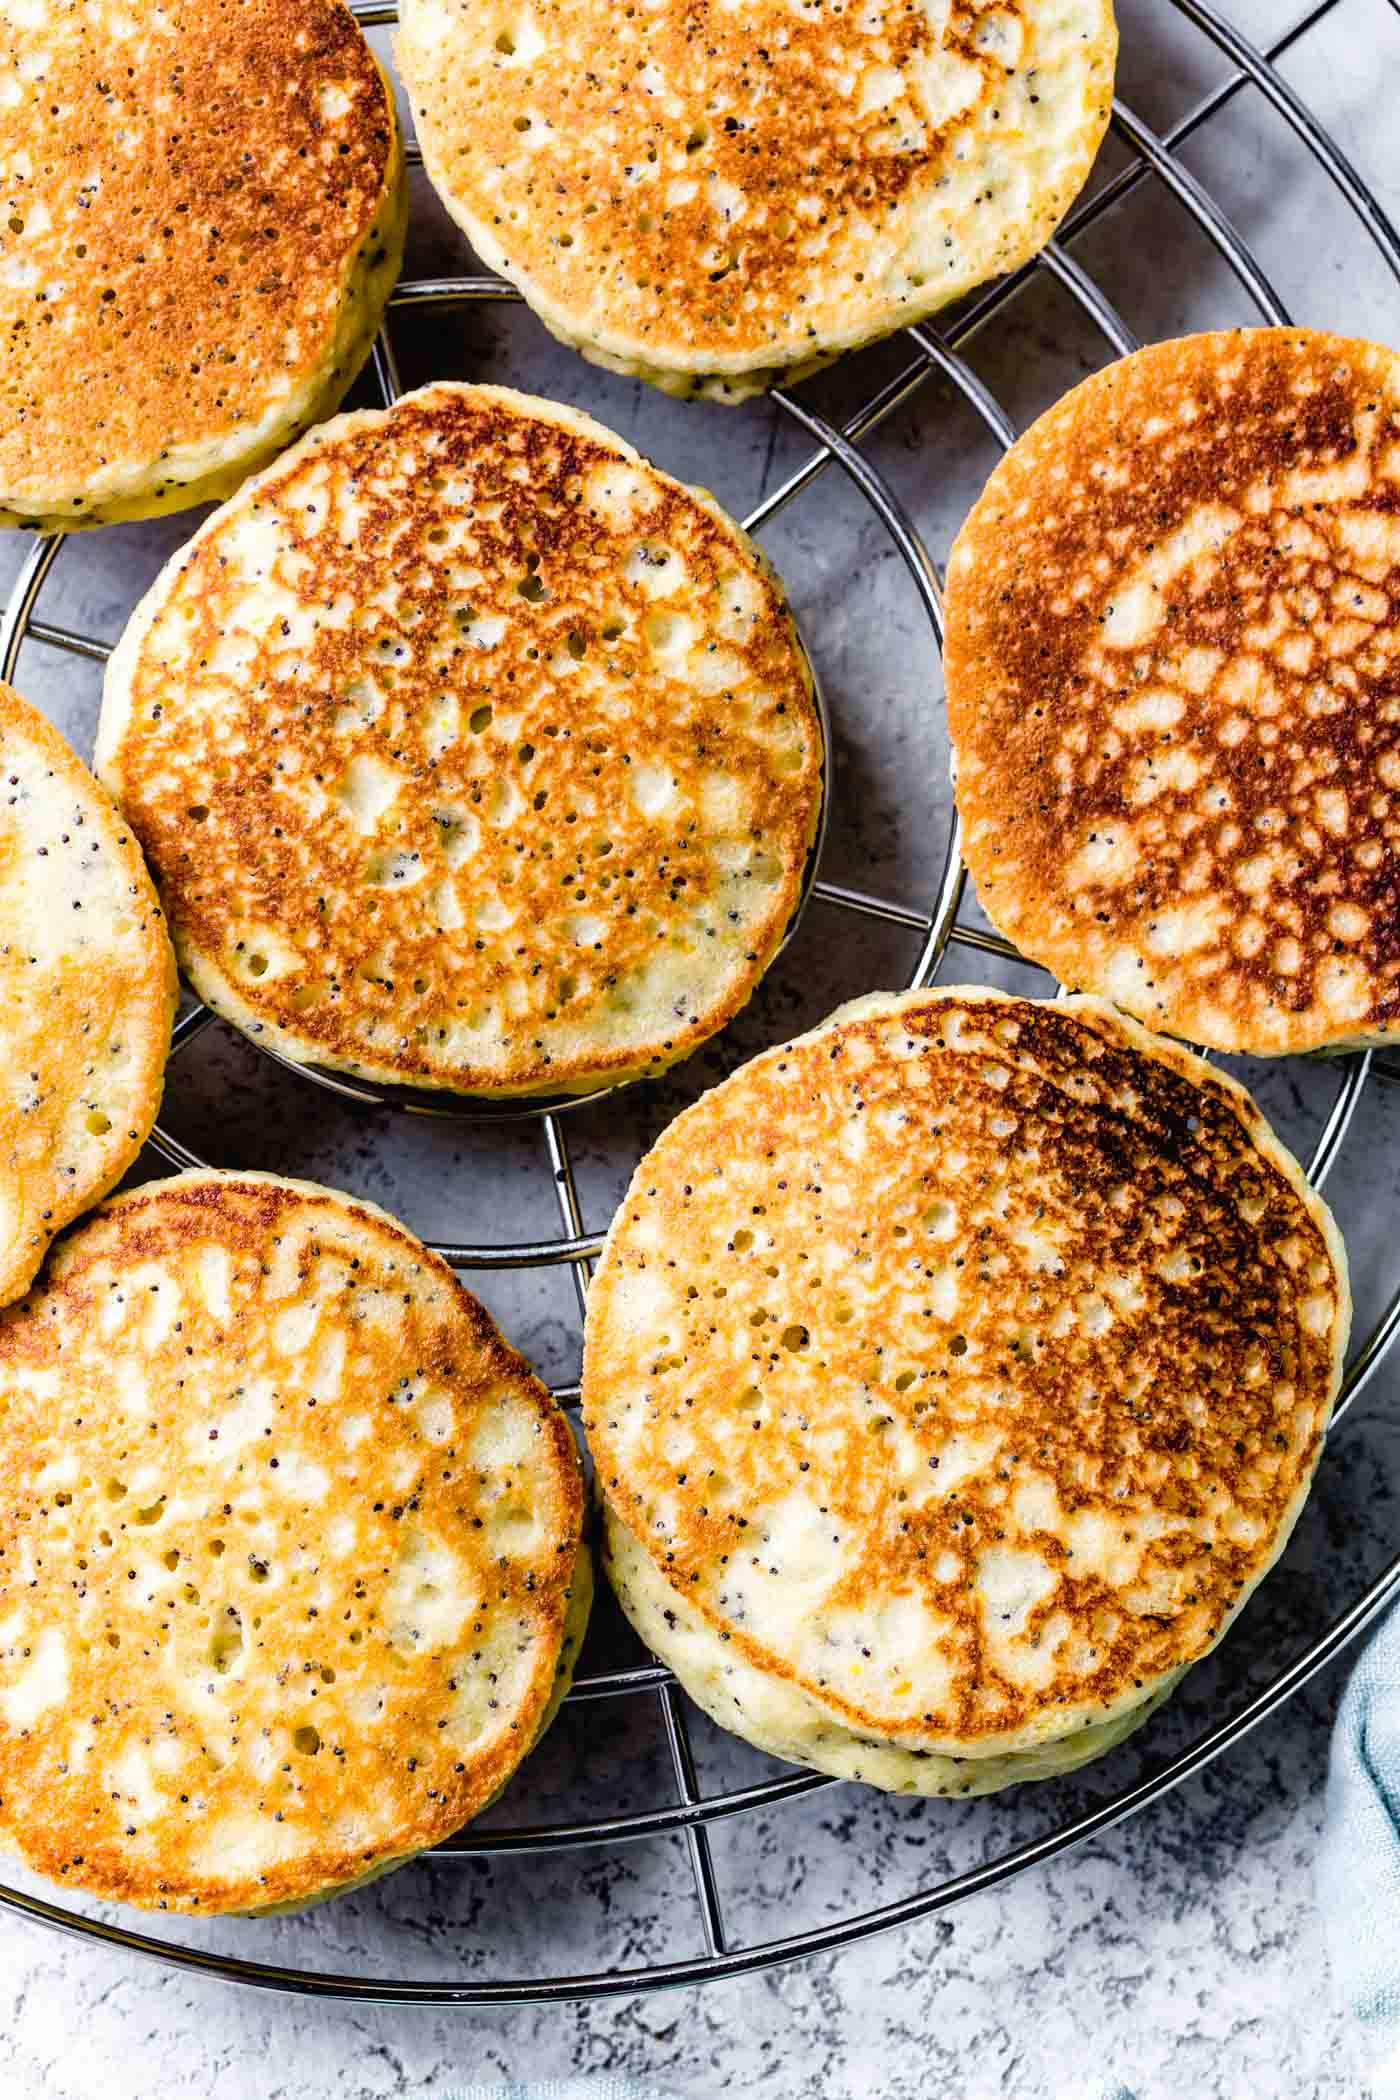 Low-carb almond flour pancakes fresh out of the pan